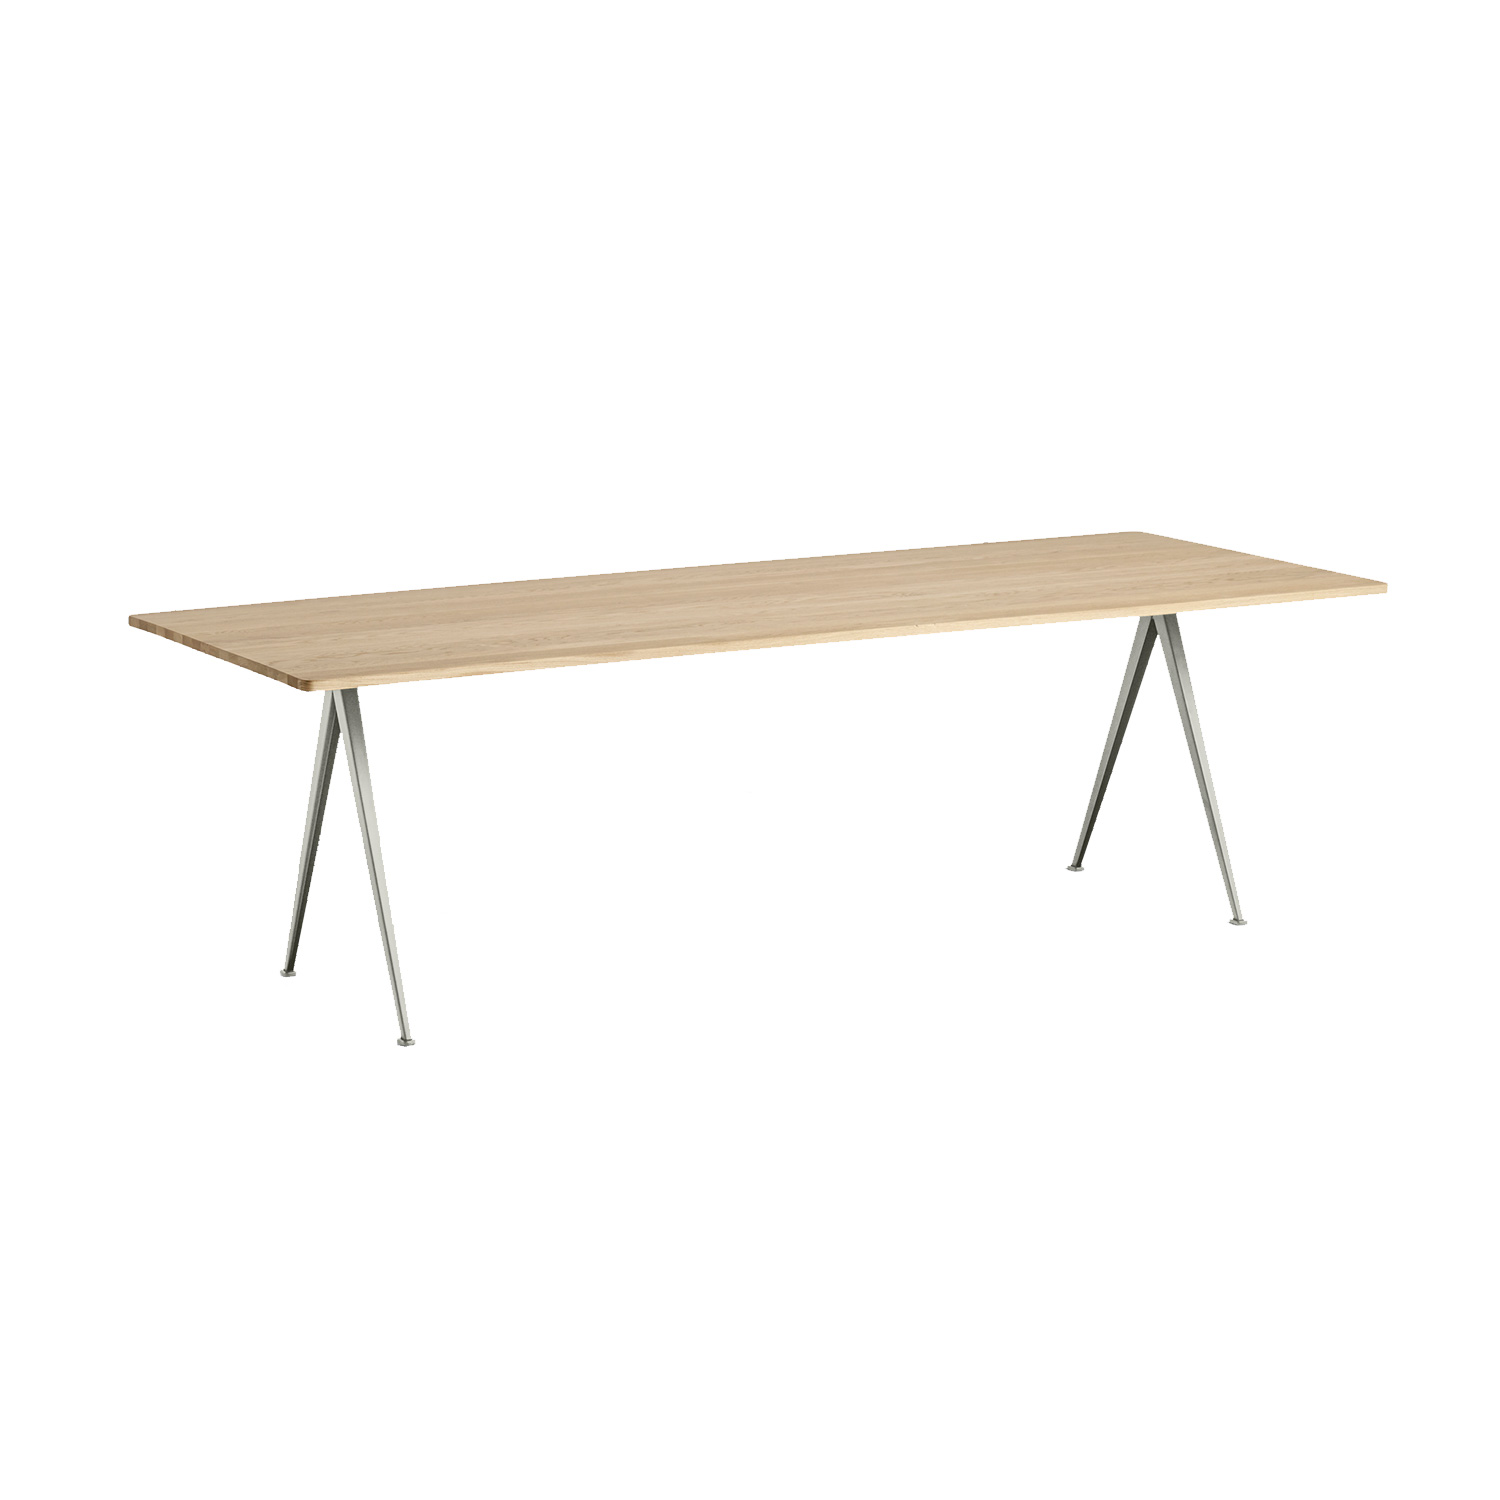 Pyramid table 02 250x85, beige frame/matt